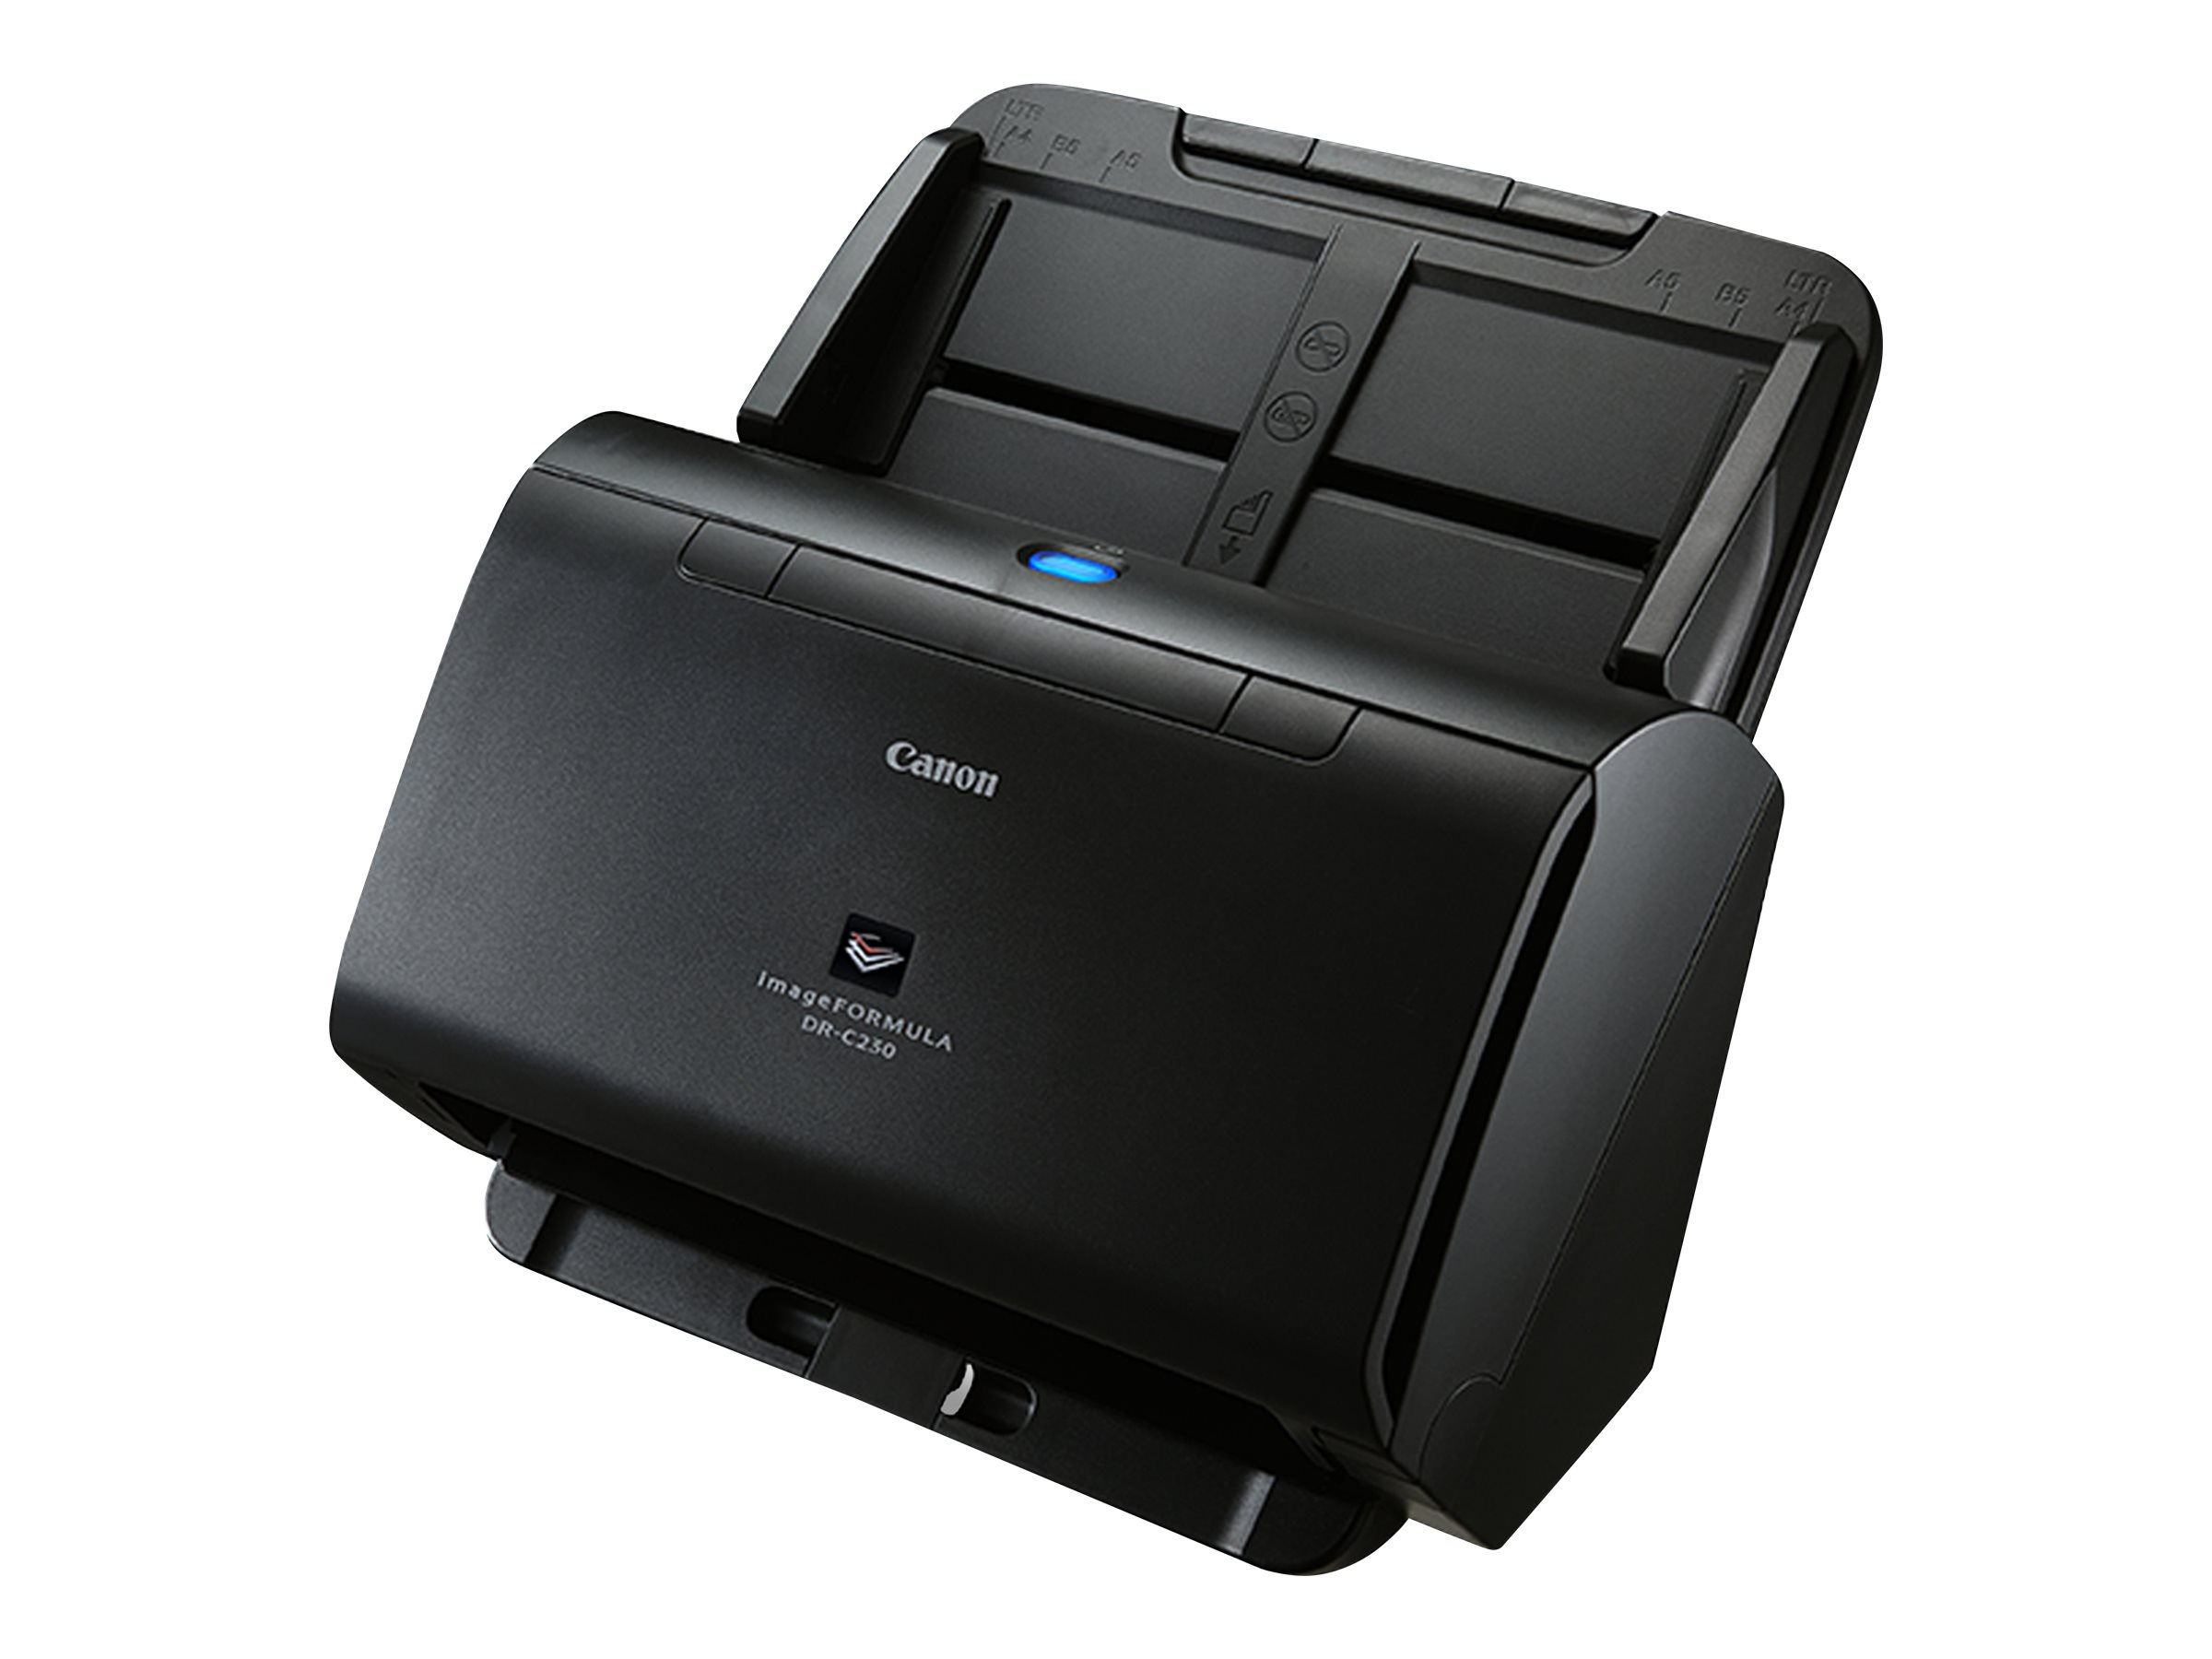 Canon imageFORMULA DR-C230 Office - document scanner - desktop - USB 2.0